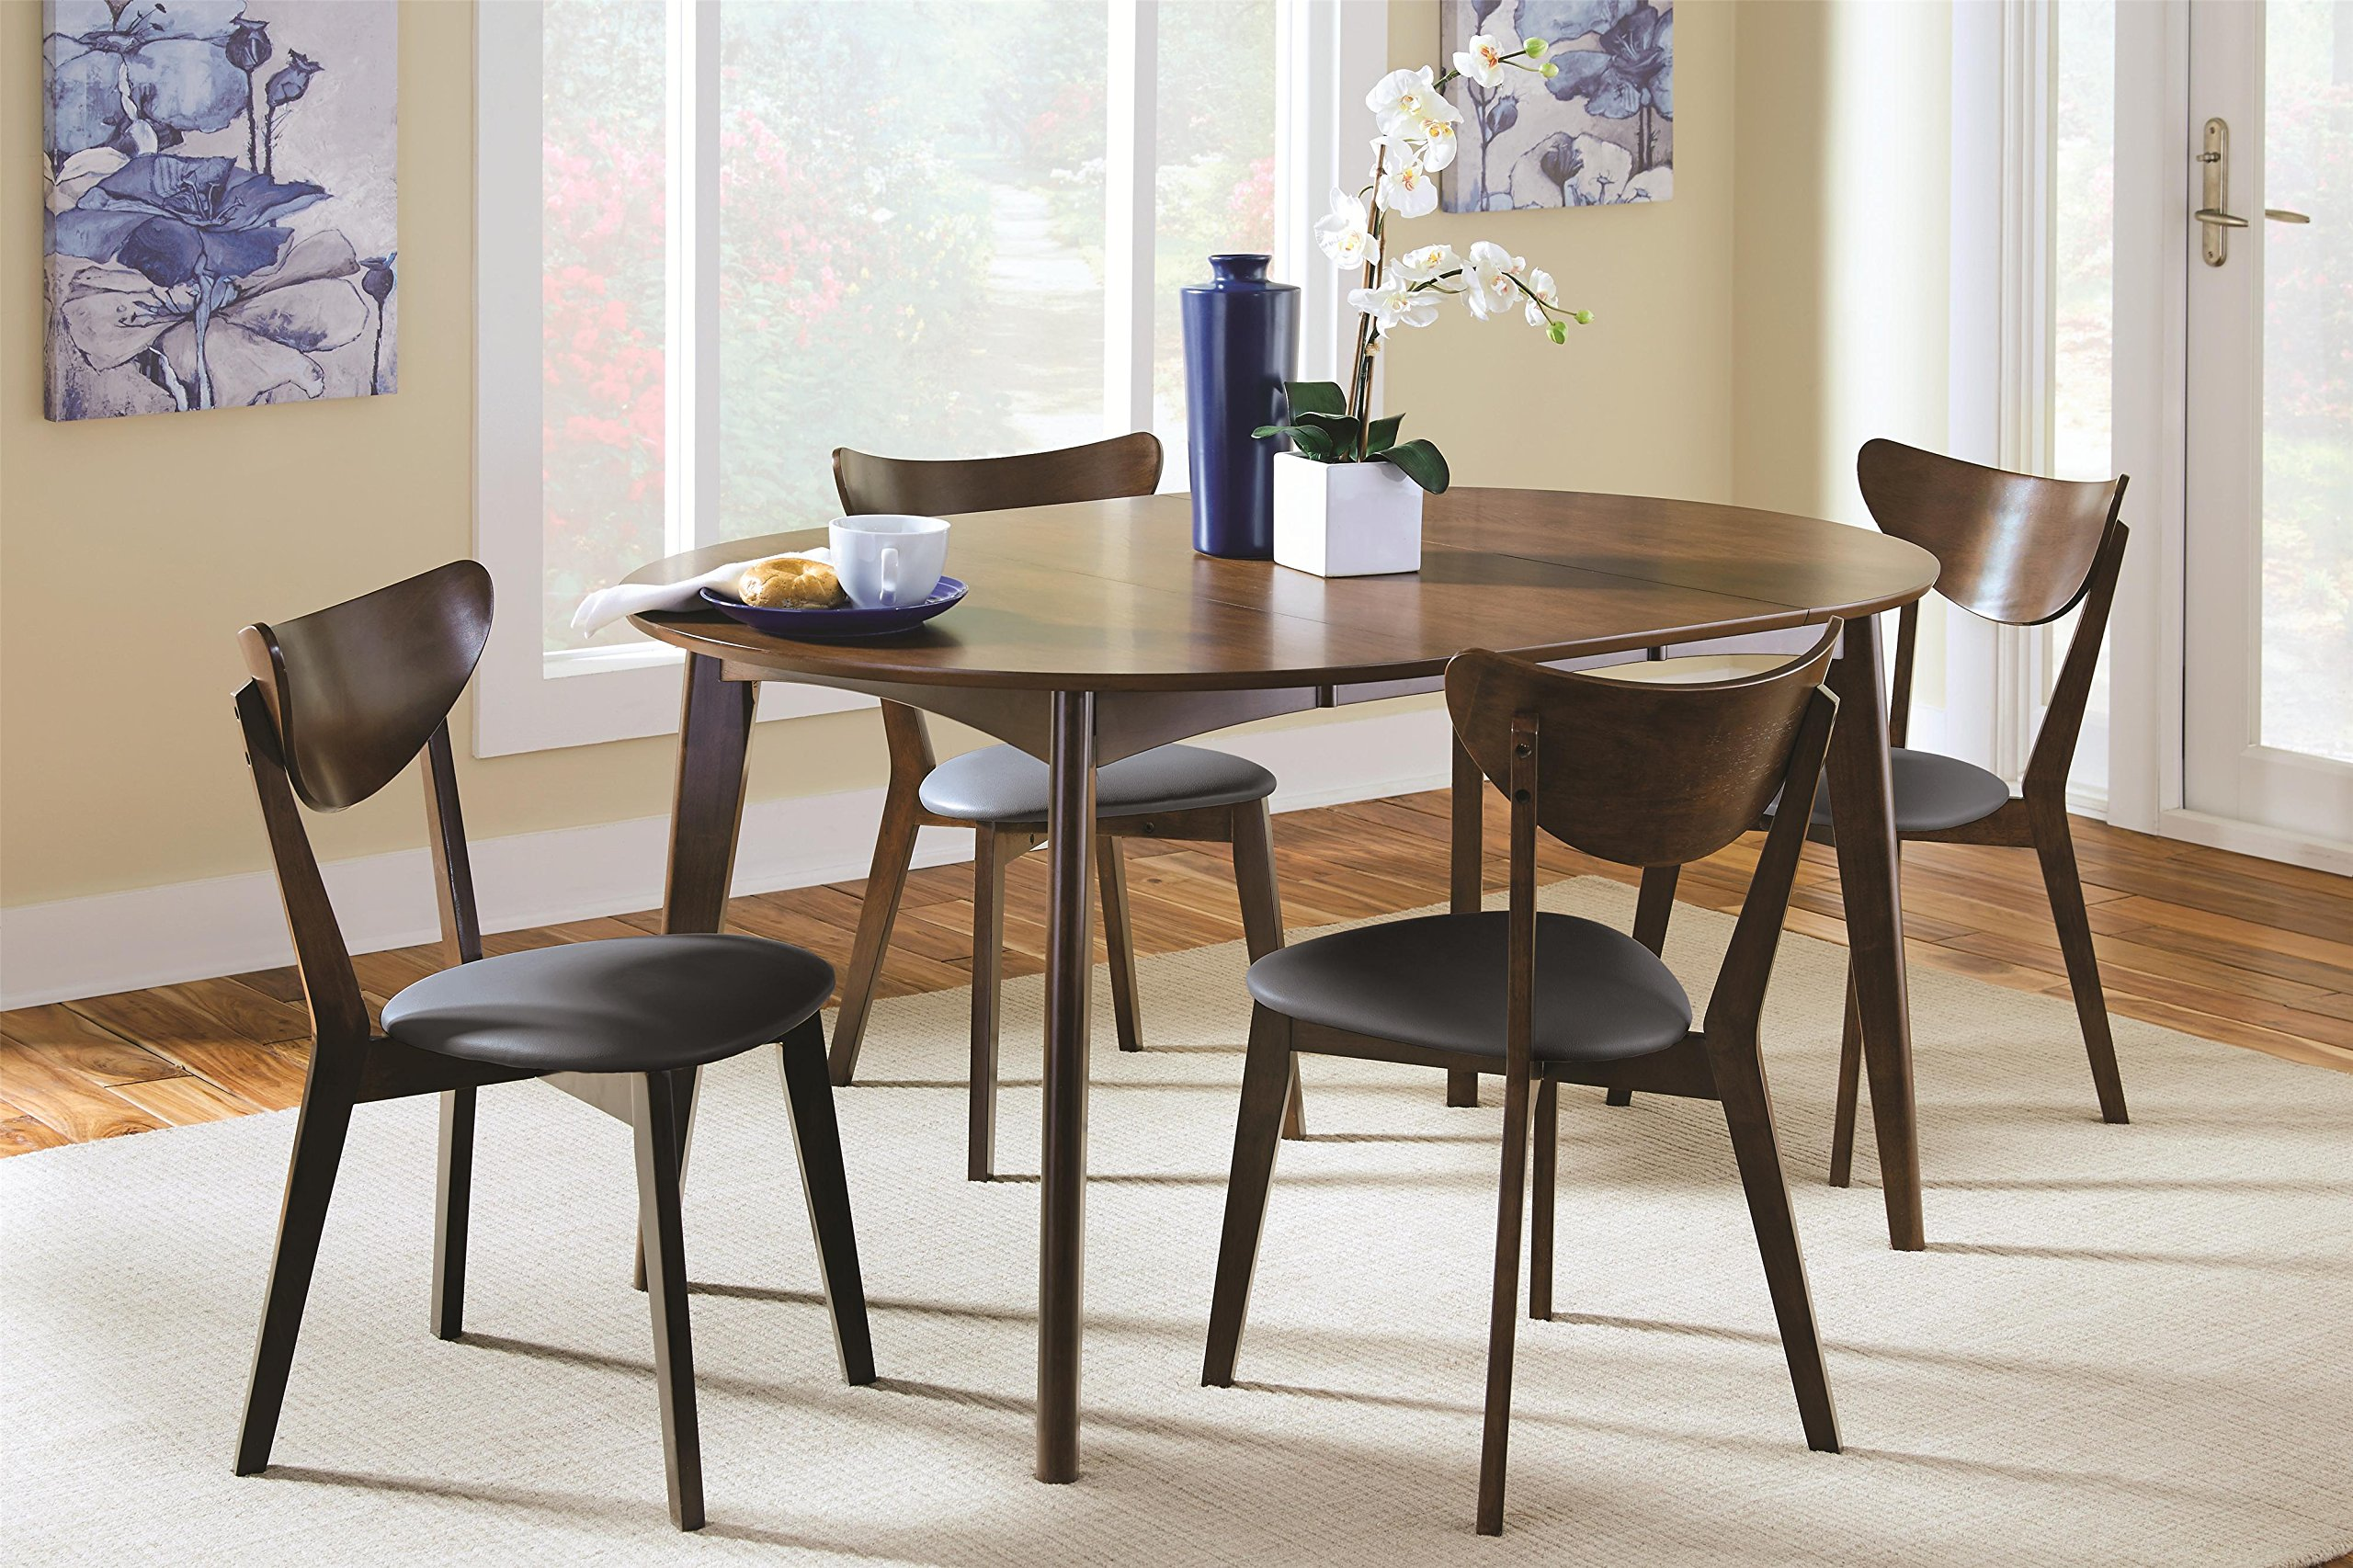 Awe Inspiring Malone 5 Piece Oval Dining Table Set By Coaster Home Furnishings Gmtry Best Dining Table And Chair Ideas Images Gmtryco